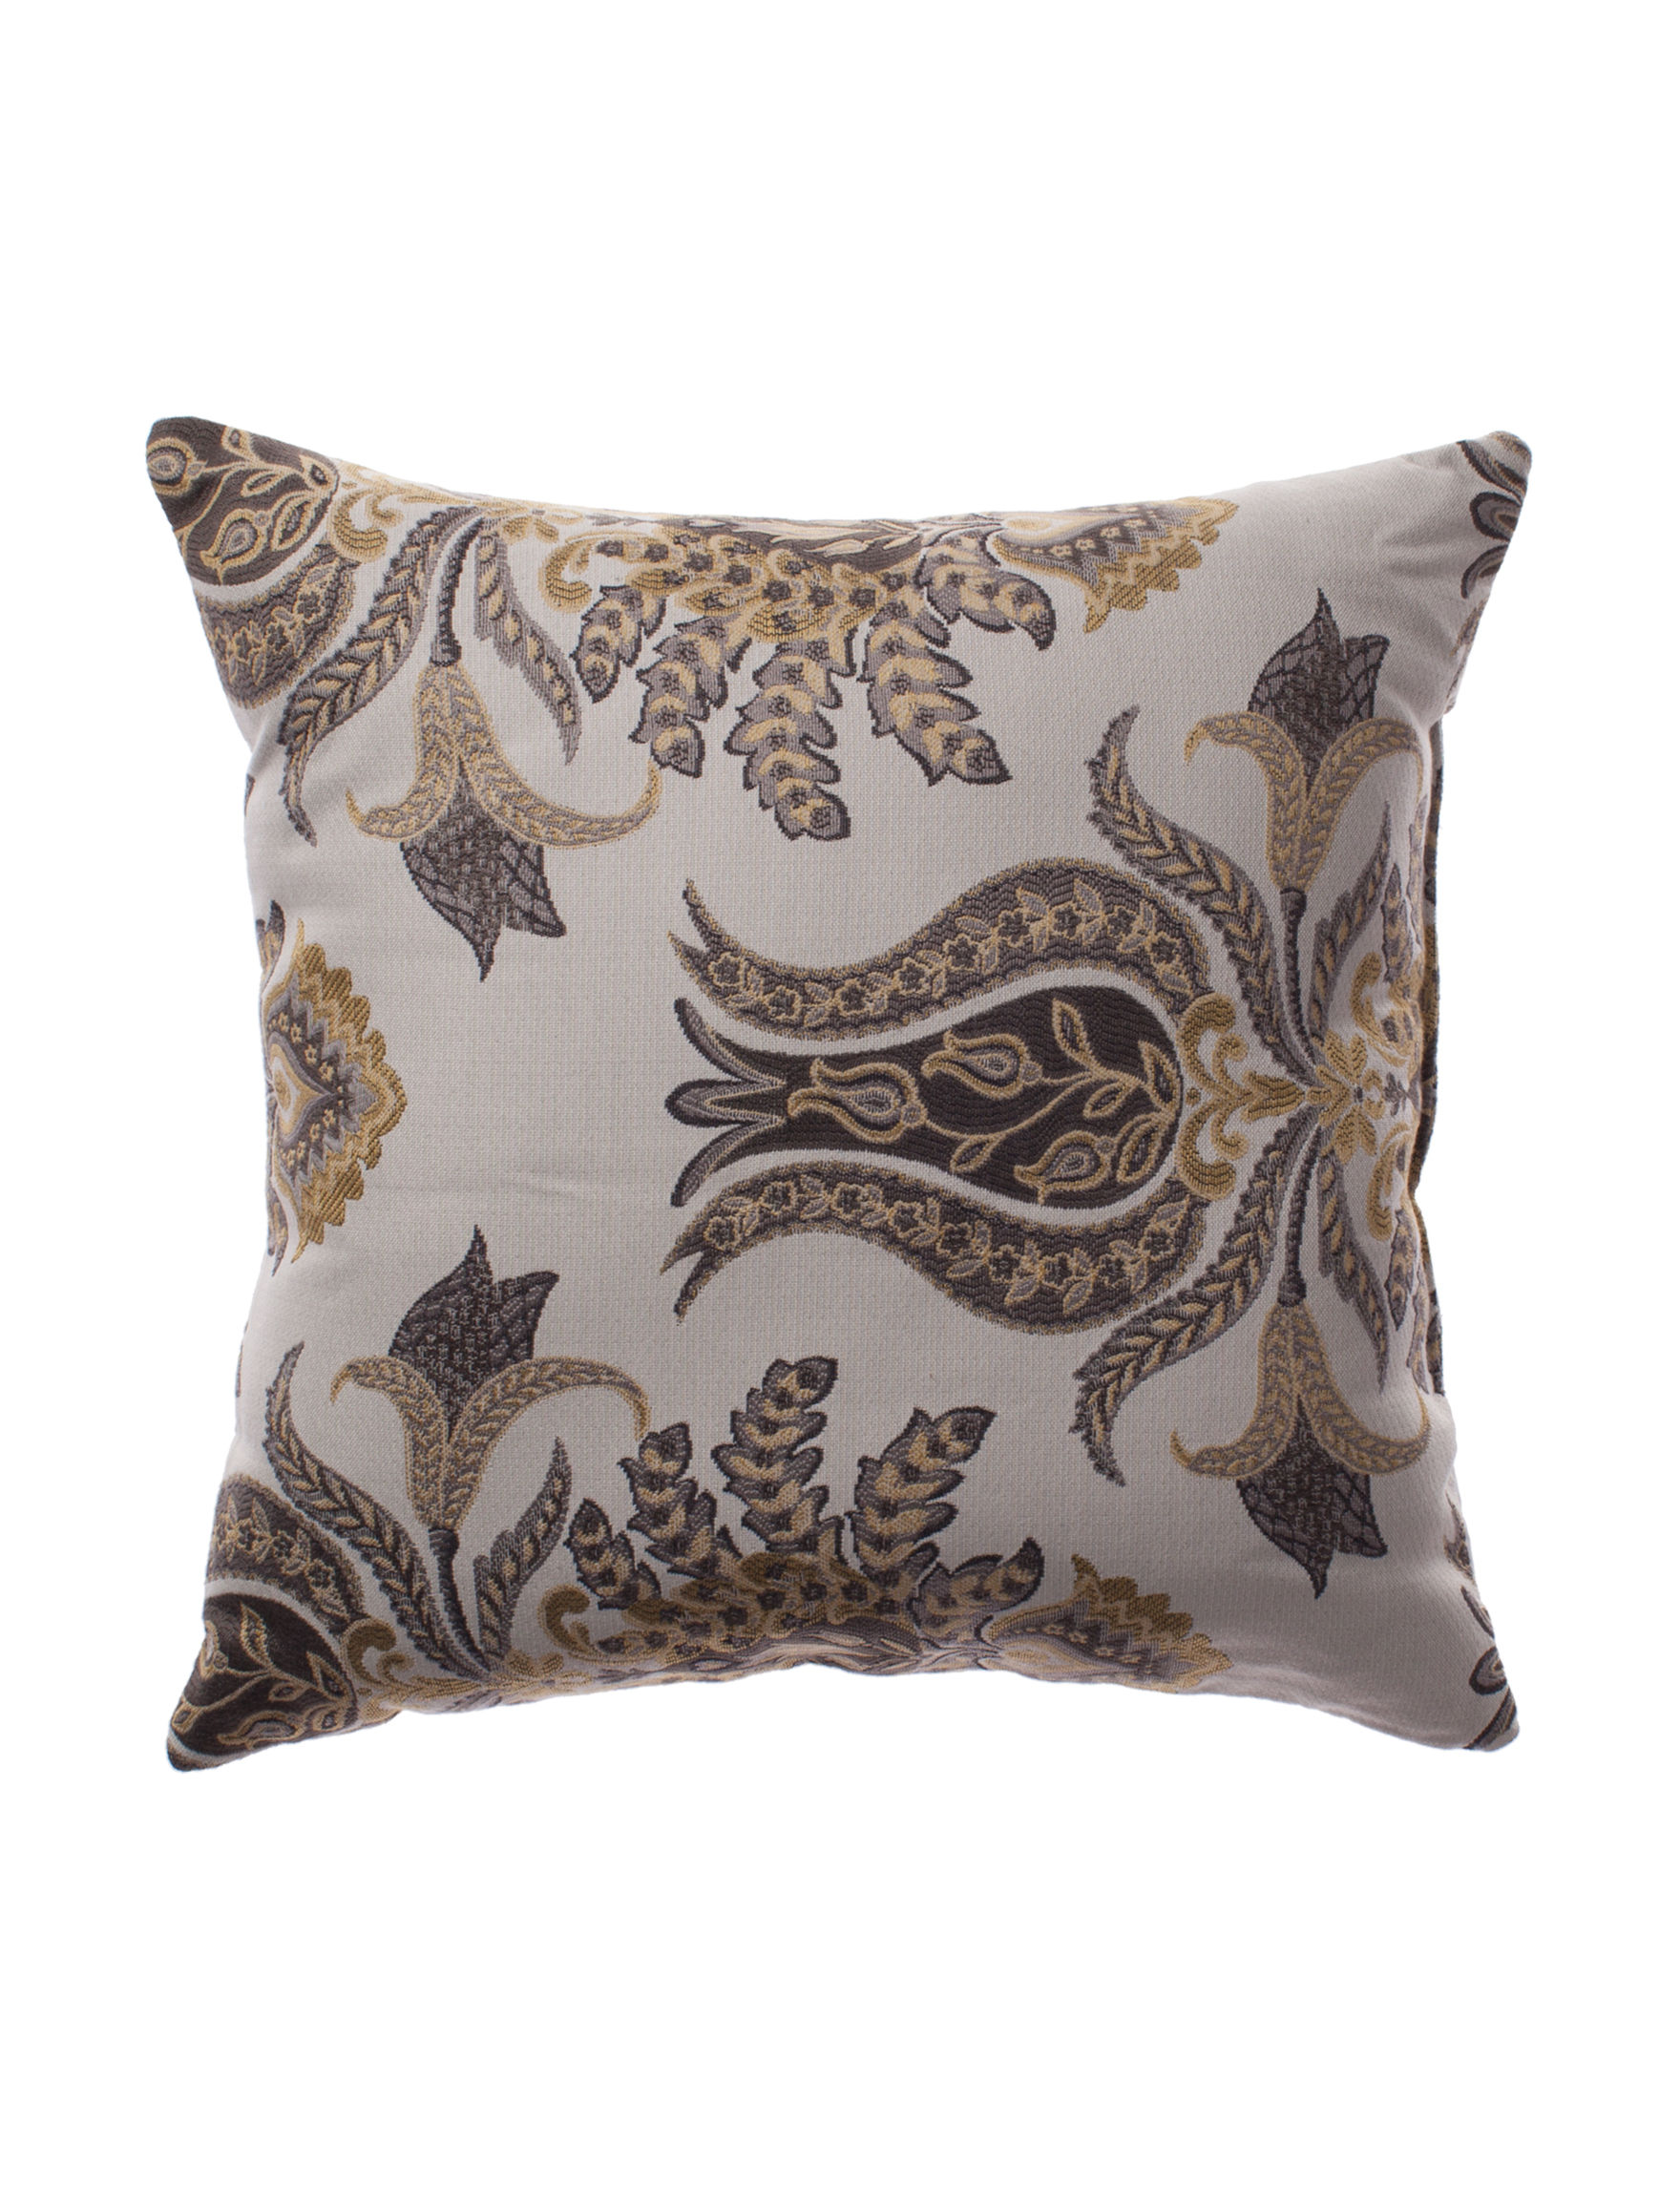 Home Fashions International Beige / Multi Decorative Pillows